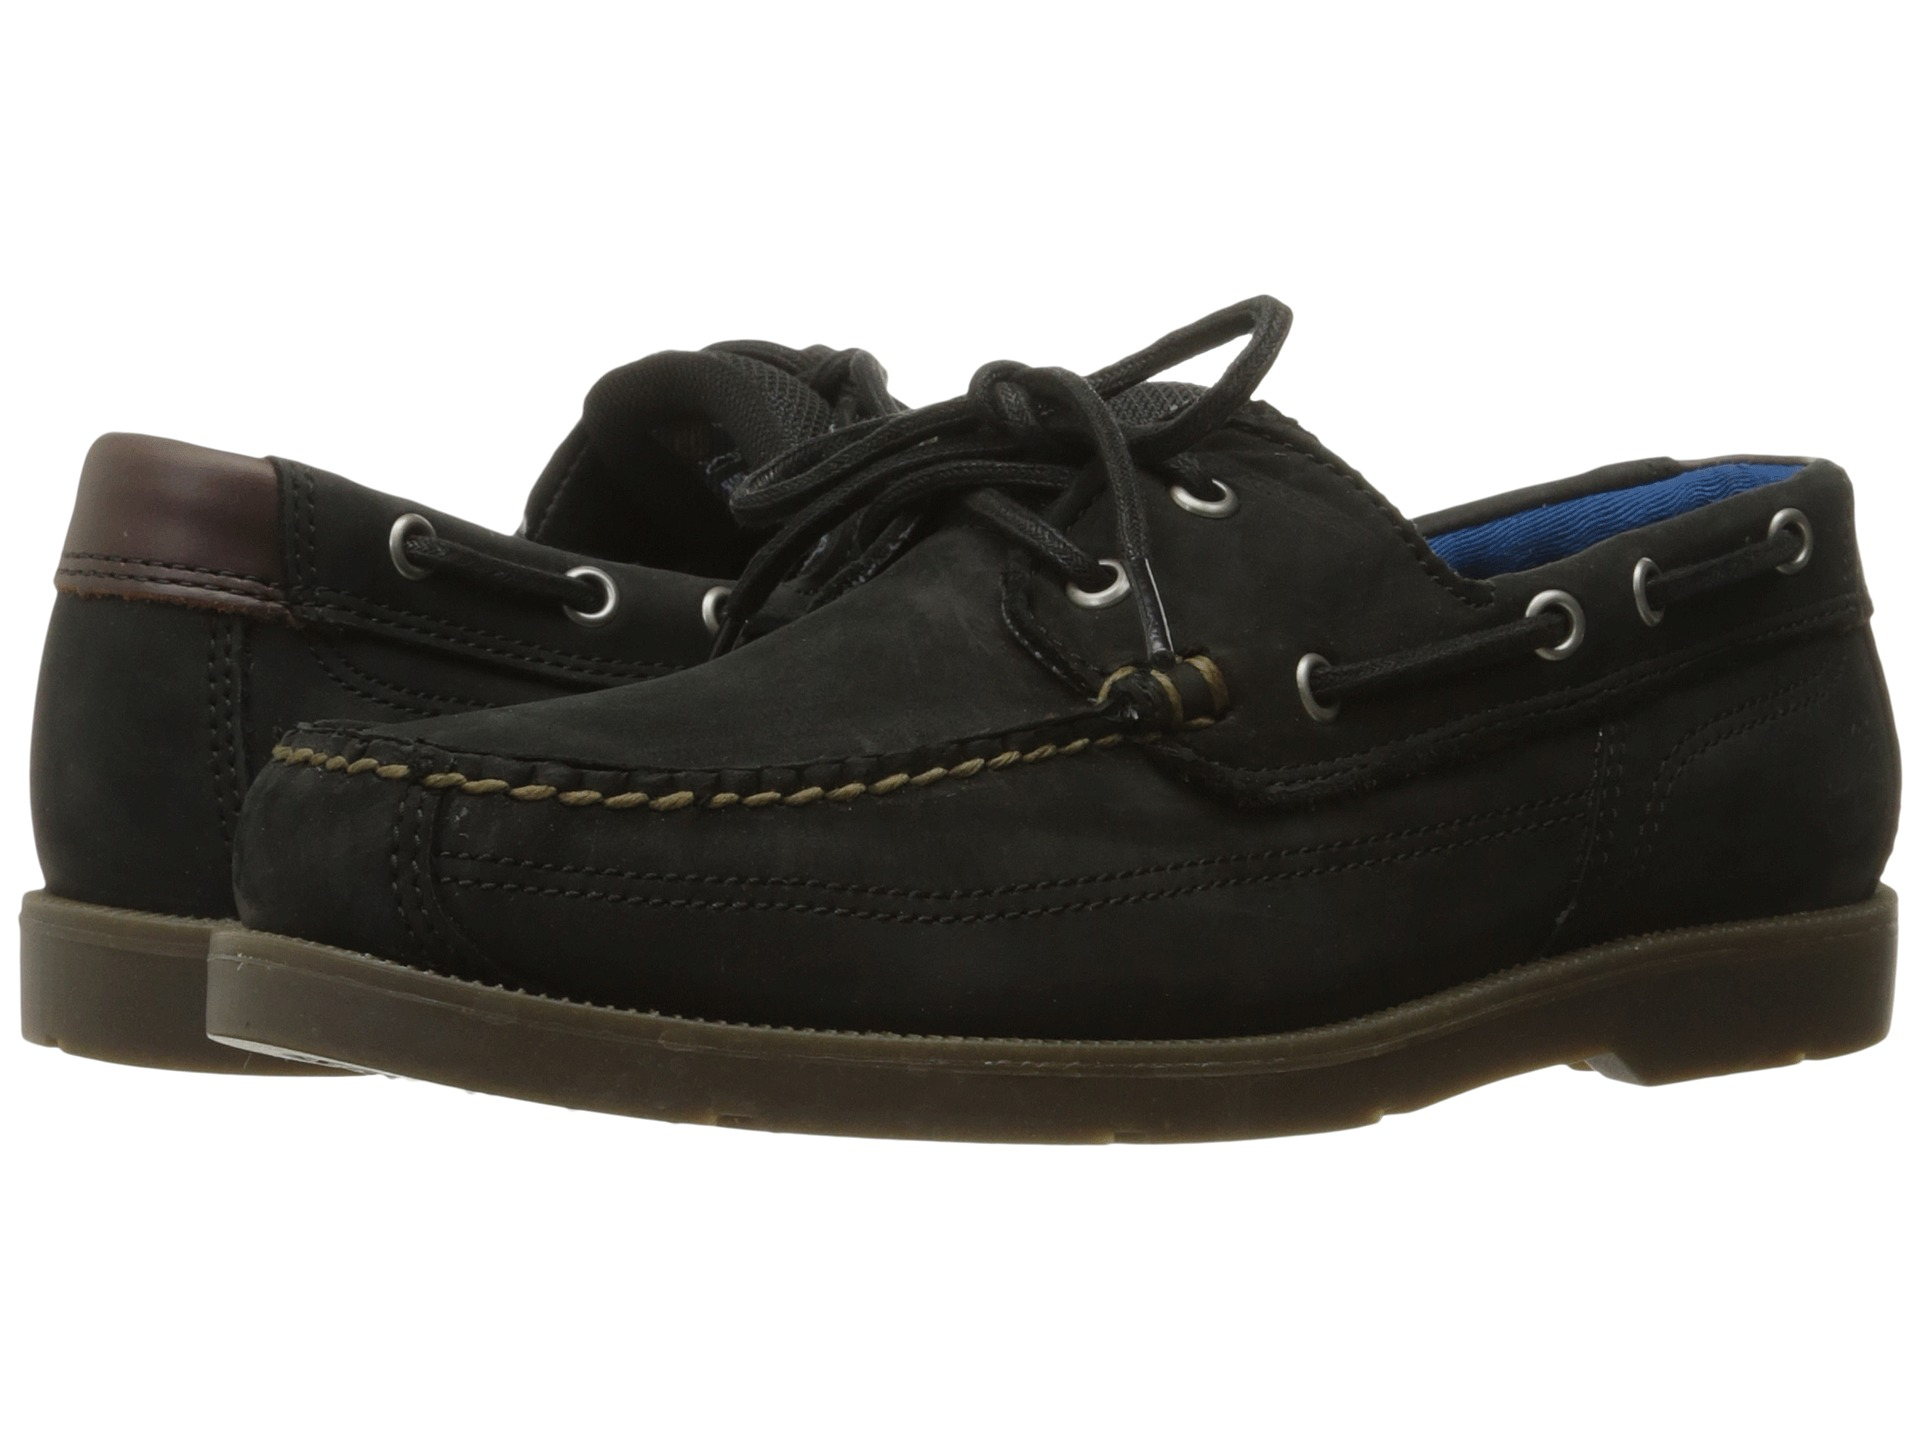 timberland wide fit boat shoes